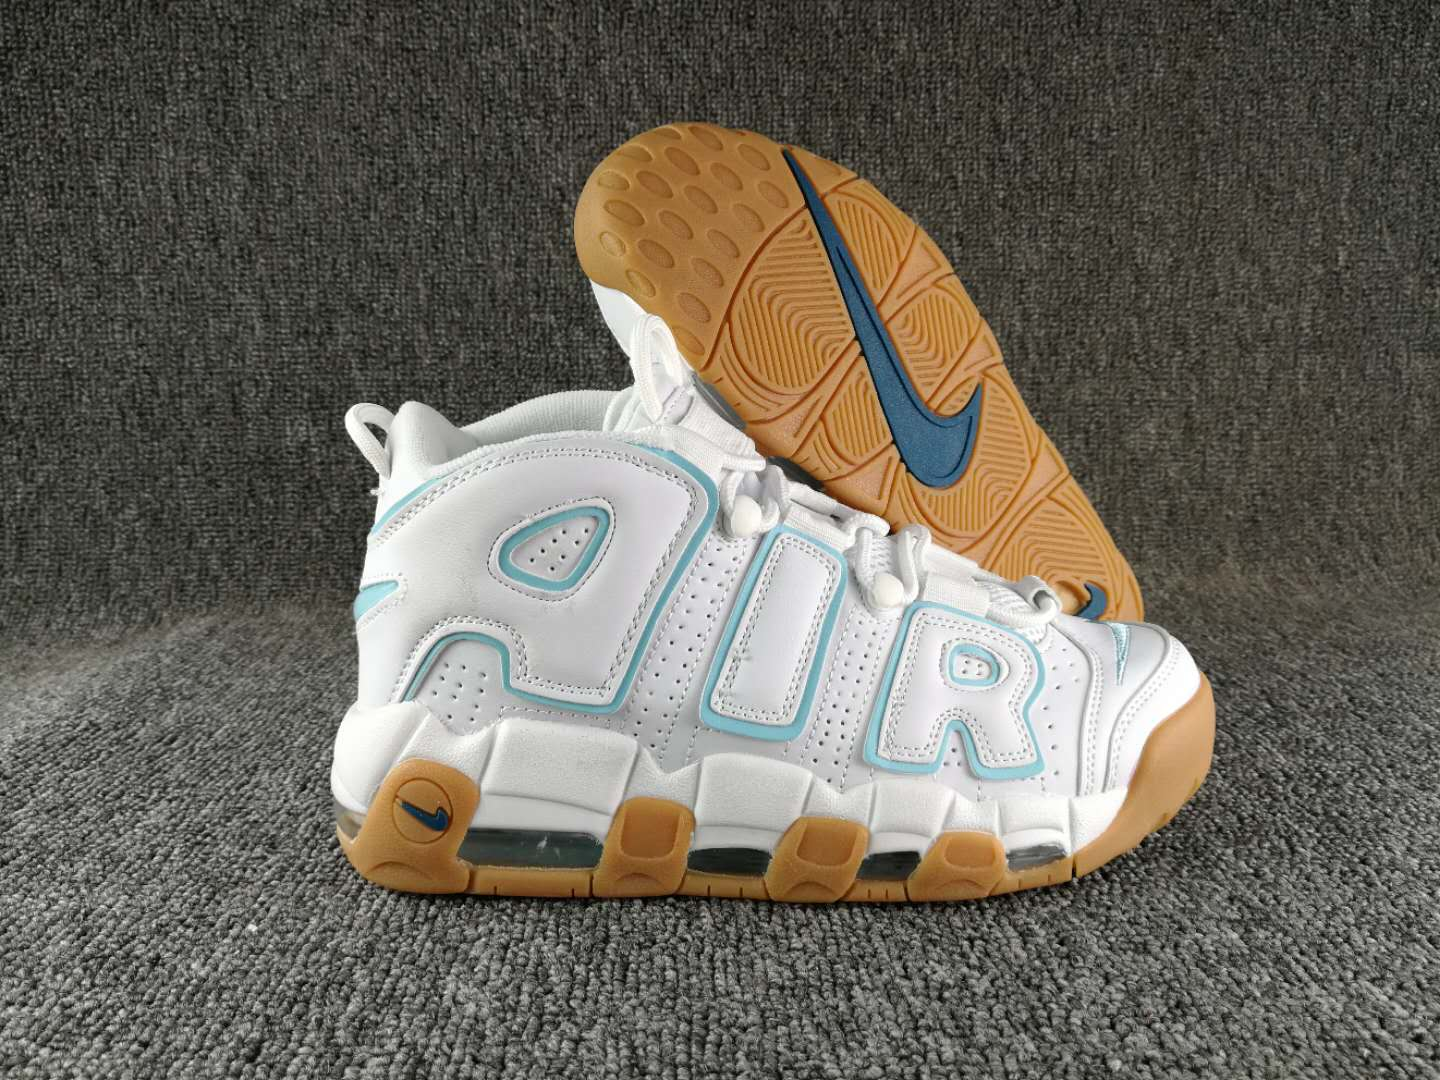 New Nike Air More Uptempo Laker Blue Blue Shoes